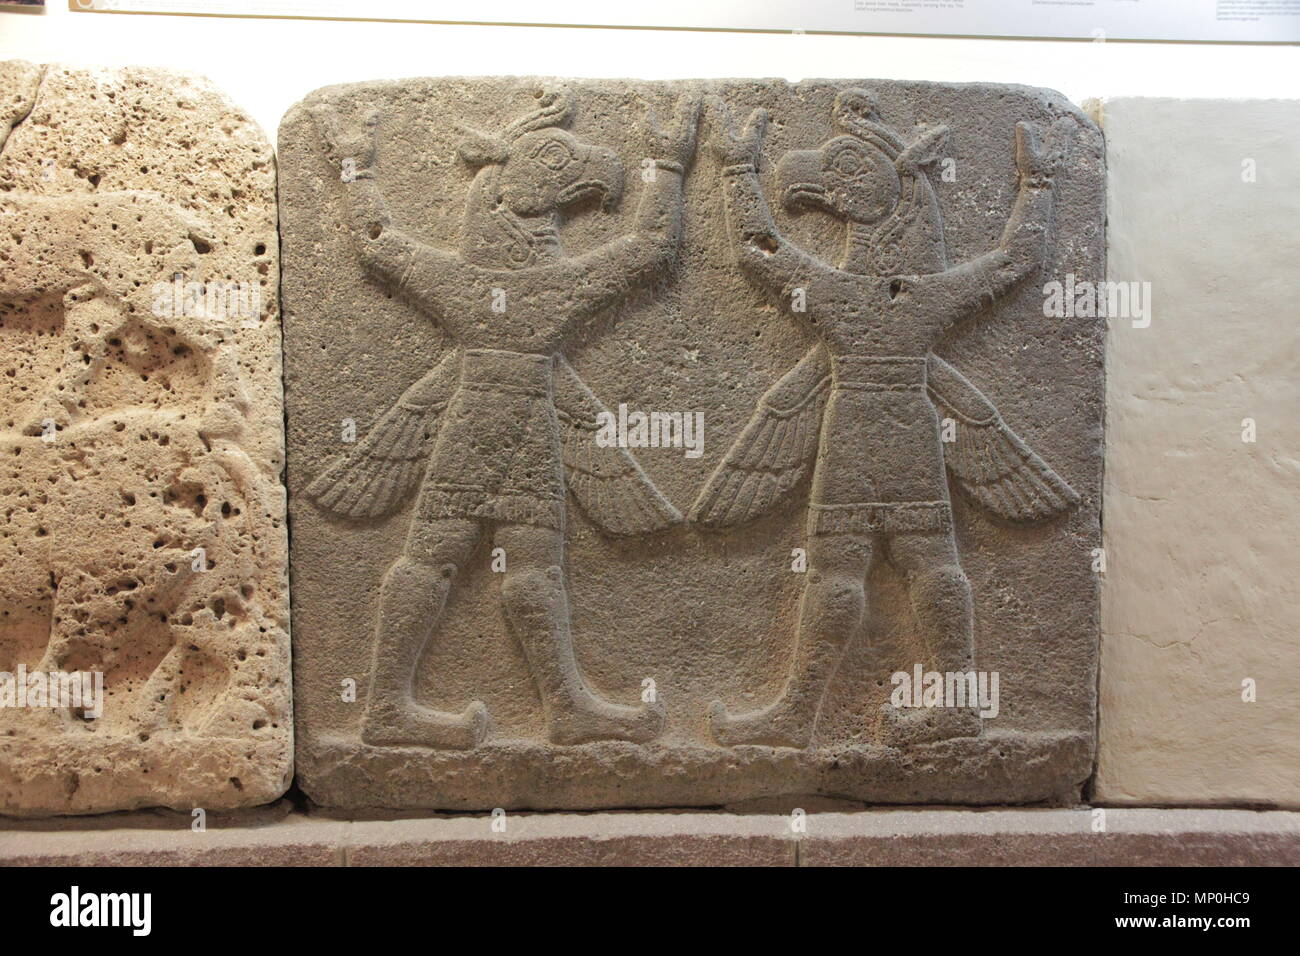 Orthostats of Heralds Wall in Museum of Anatolian Civilizations. Stock Photo